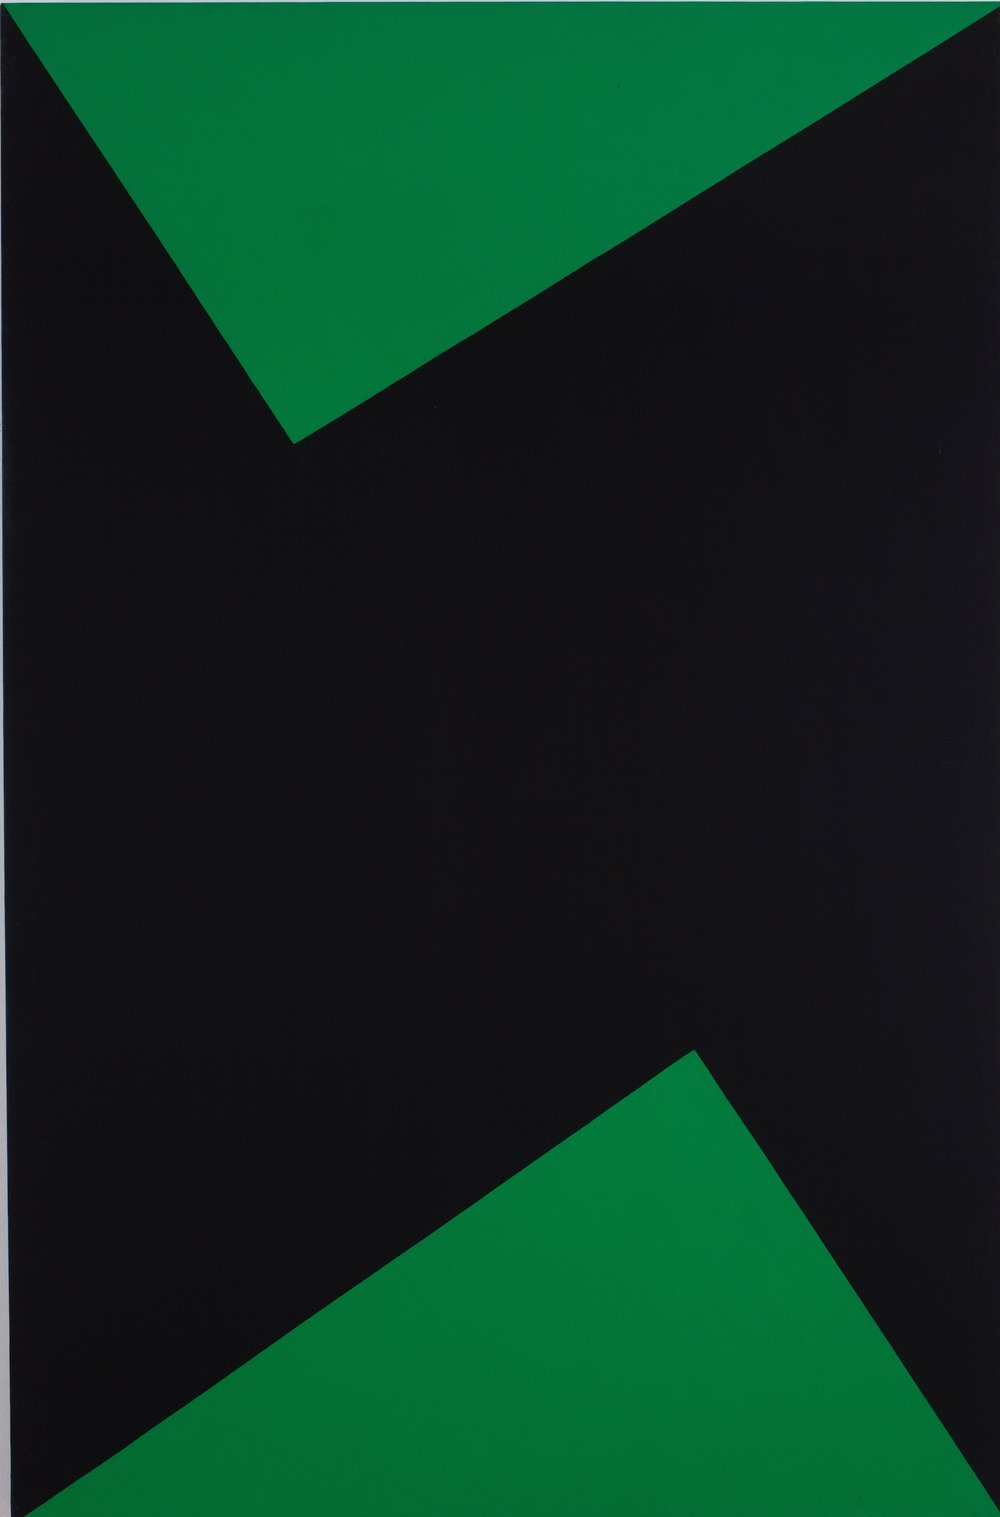 Carmen Herrera, Wednesday, 1978. Acrylic on canvas, 66 x 42 in. (167.6 x 106.7 cm). Museum Pfalzgalerie Kaiserslautern, Germany © Carmen Herrera